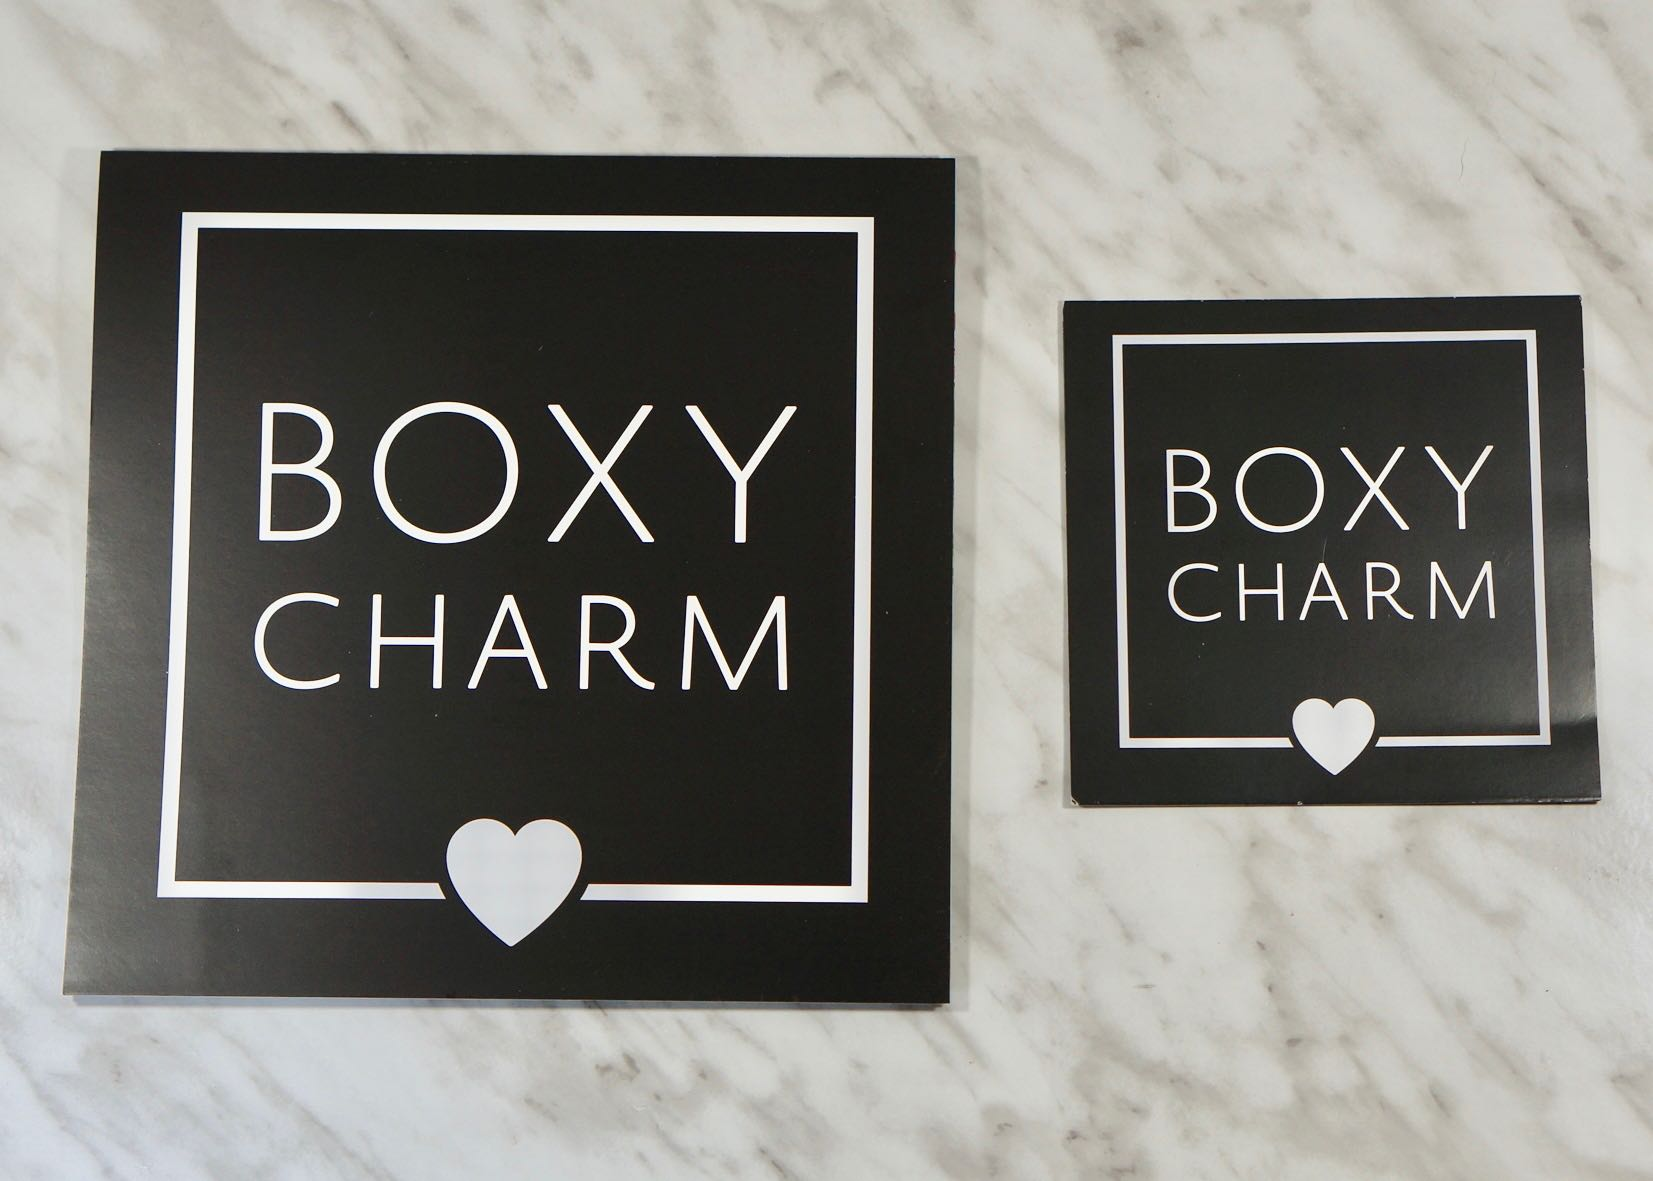 Regular Boxy vs Boxy LuxeDSC09649.jpg